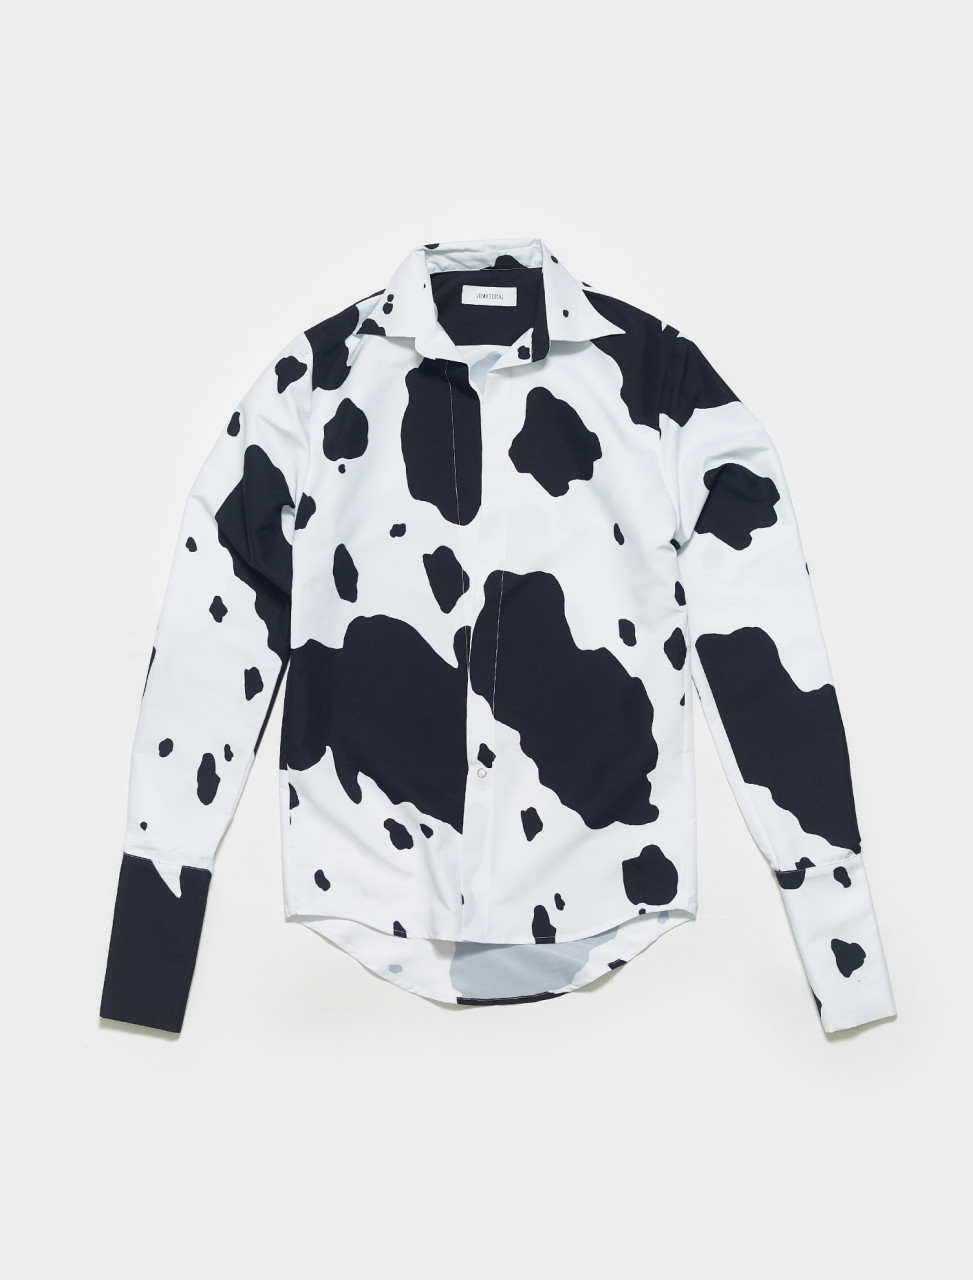 LSSS21-13-COW LAZOSCHMIDL NOBERT SHIRT IN COW PRINT